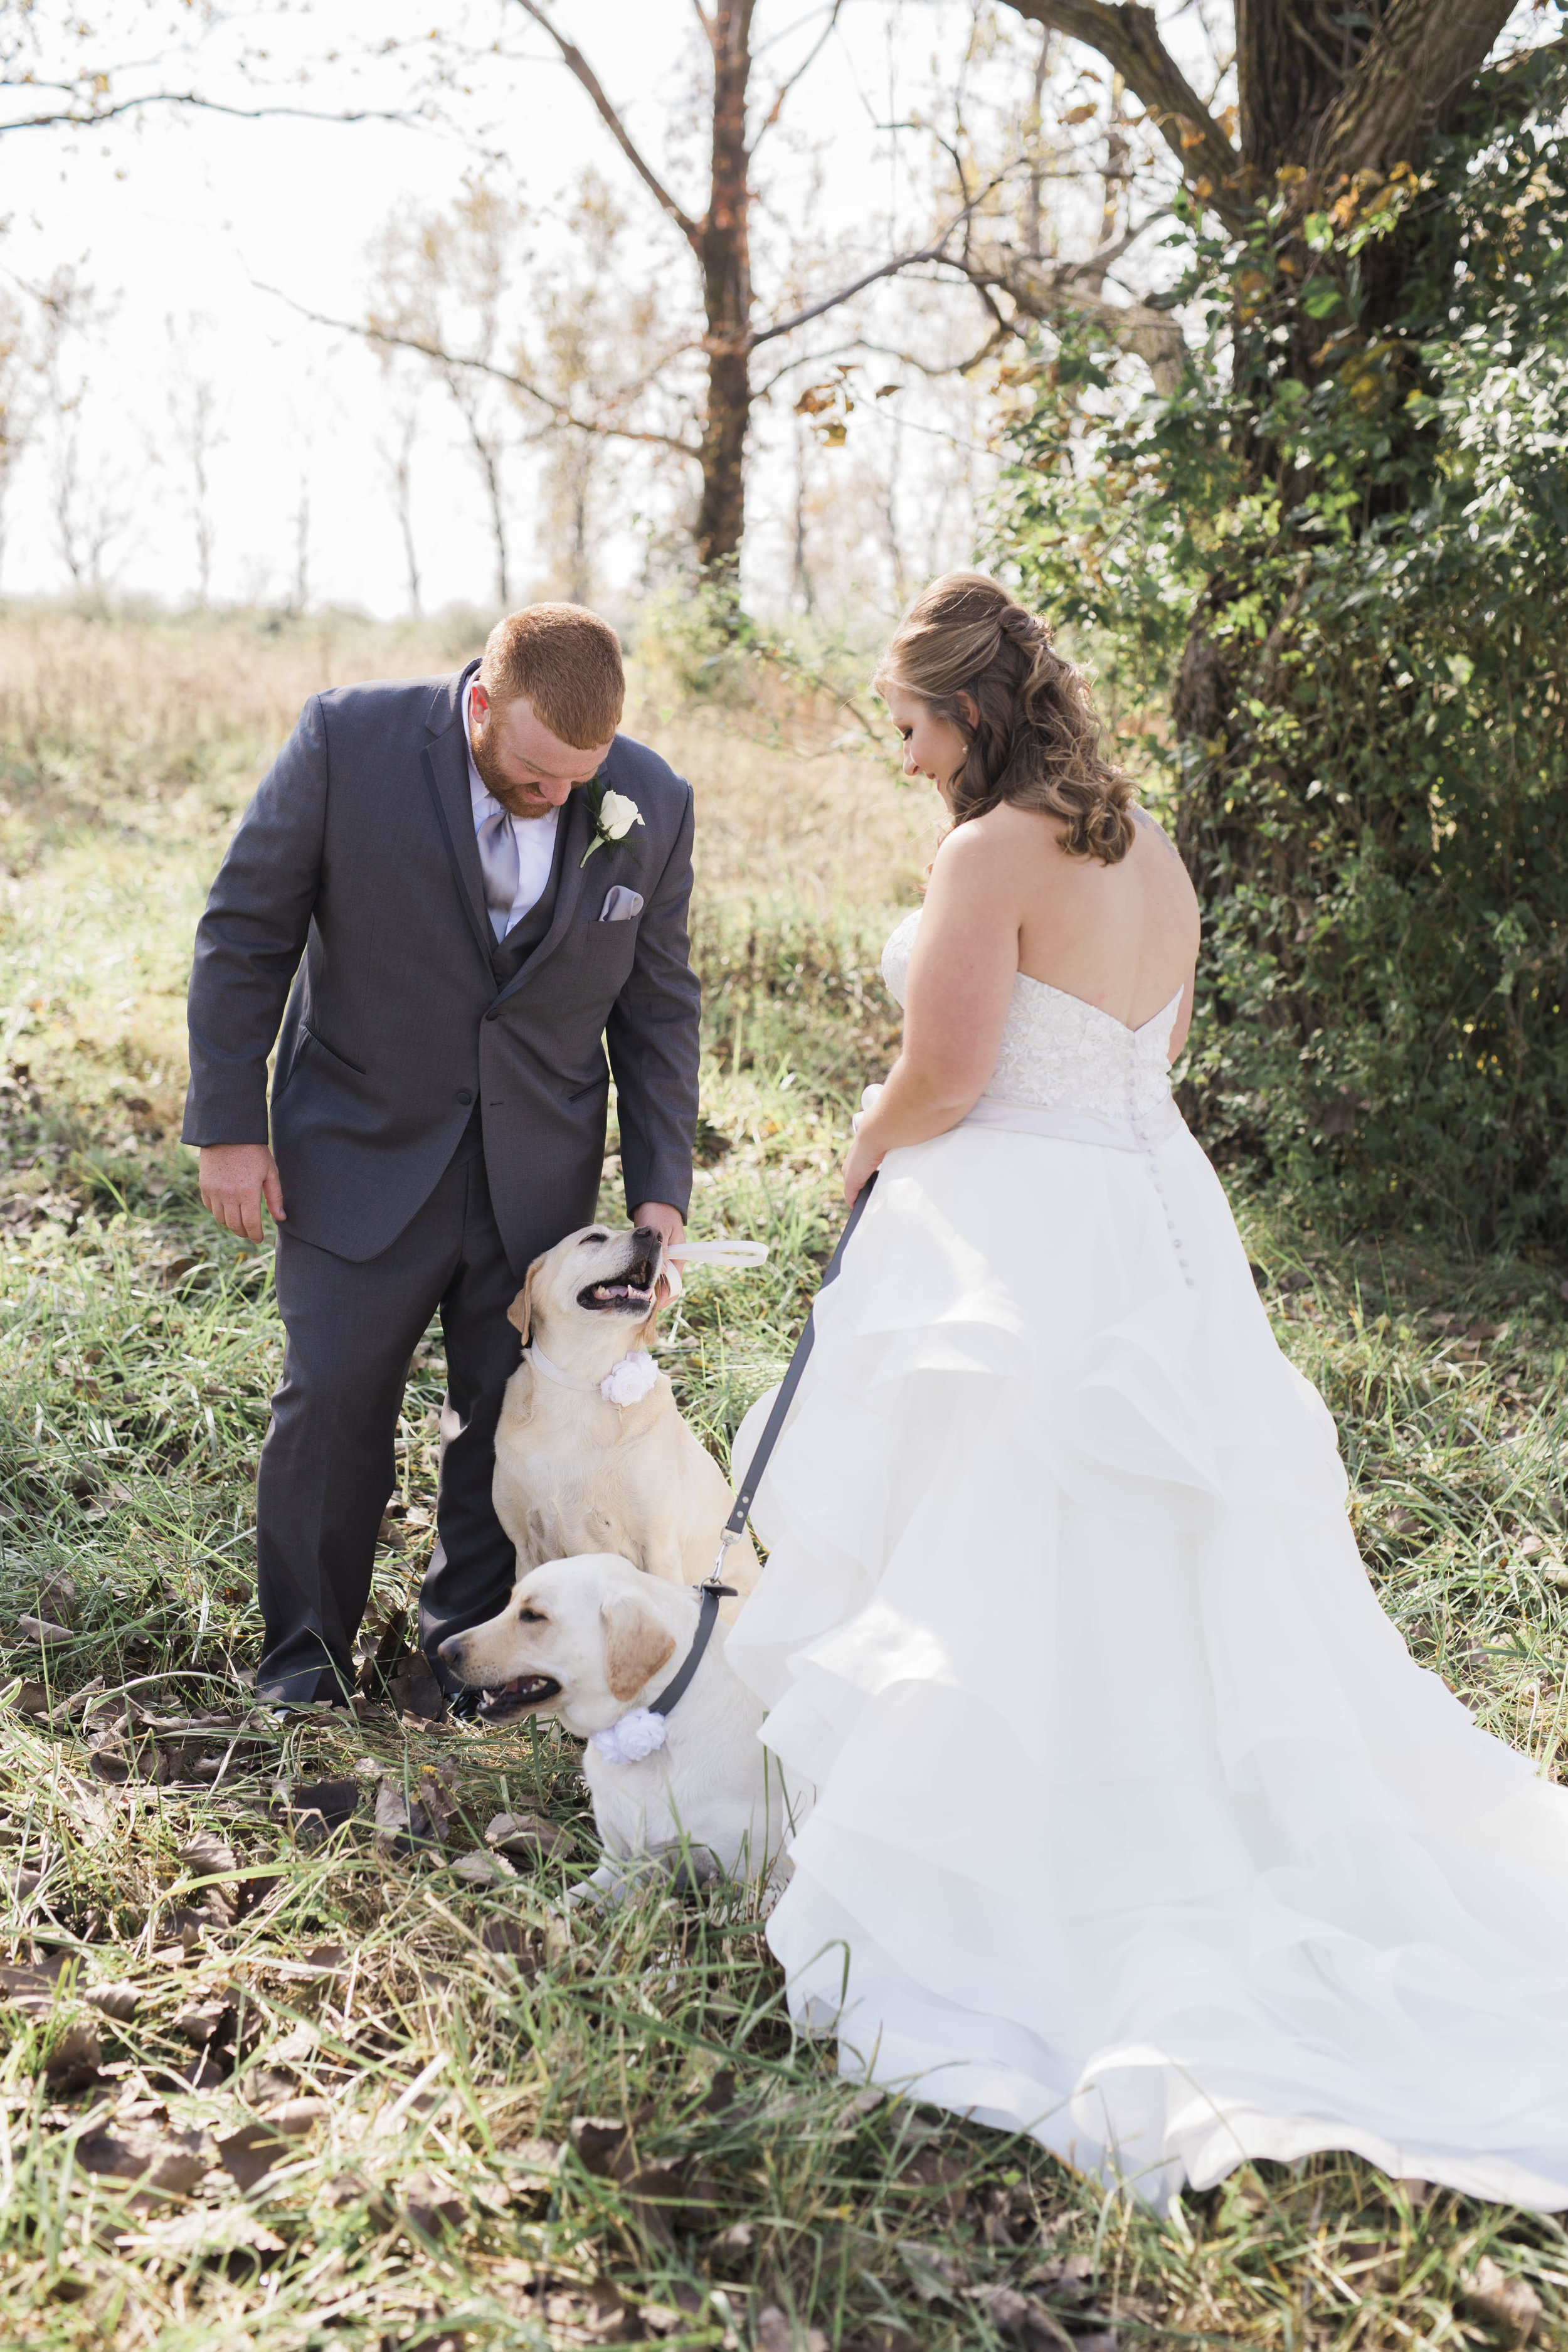 blog_dog_in_wedding-3.jpg